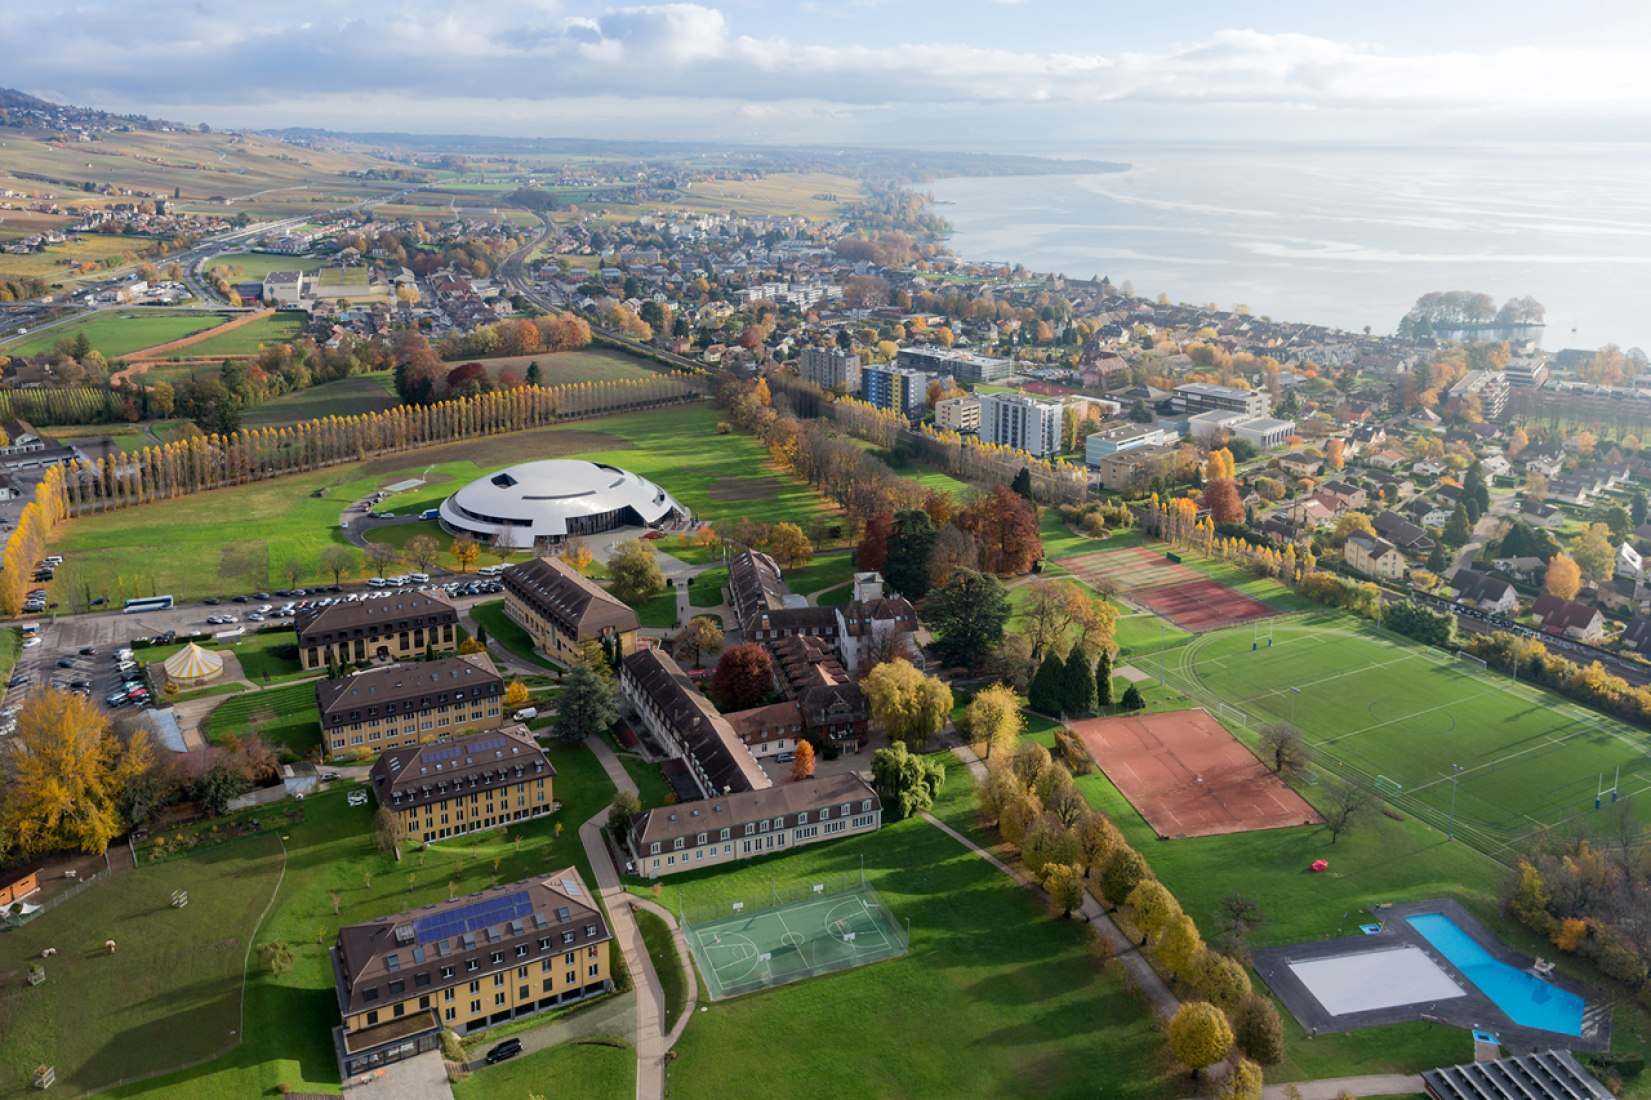 Aerial view of the Campus. Le Rosey Concert Hall by Bernard Tschumi. Fotograph © Iwan baan